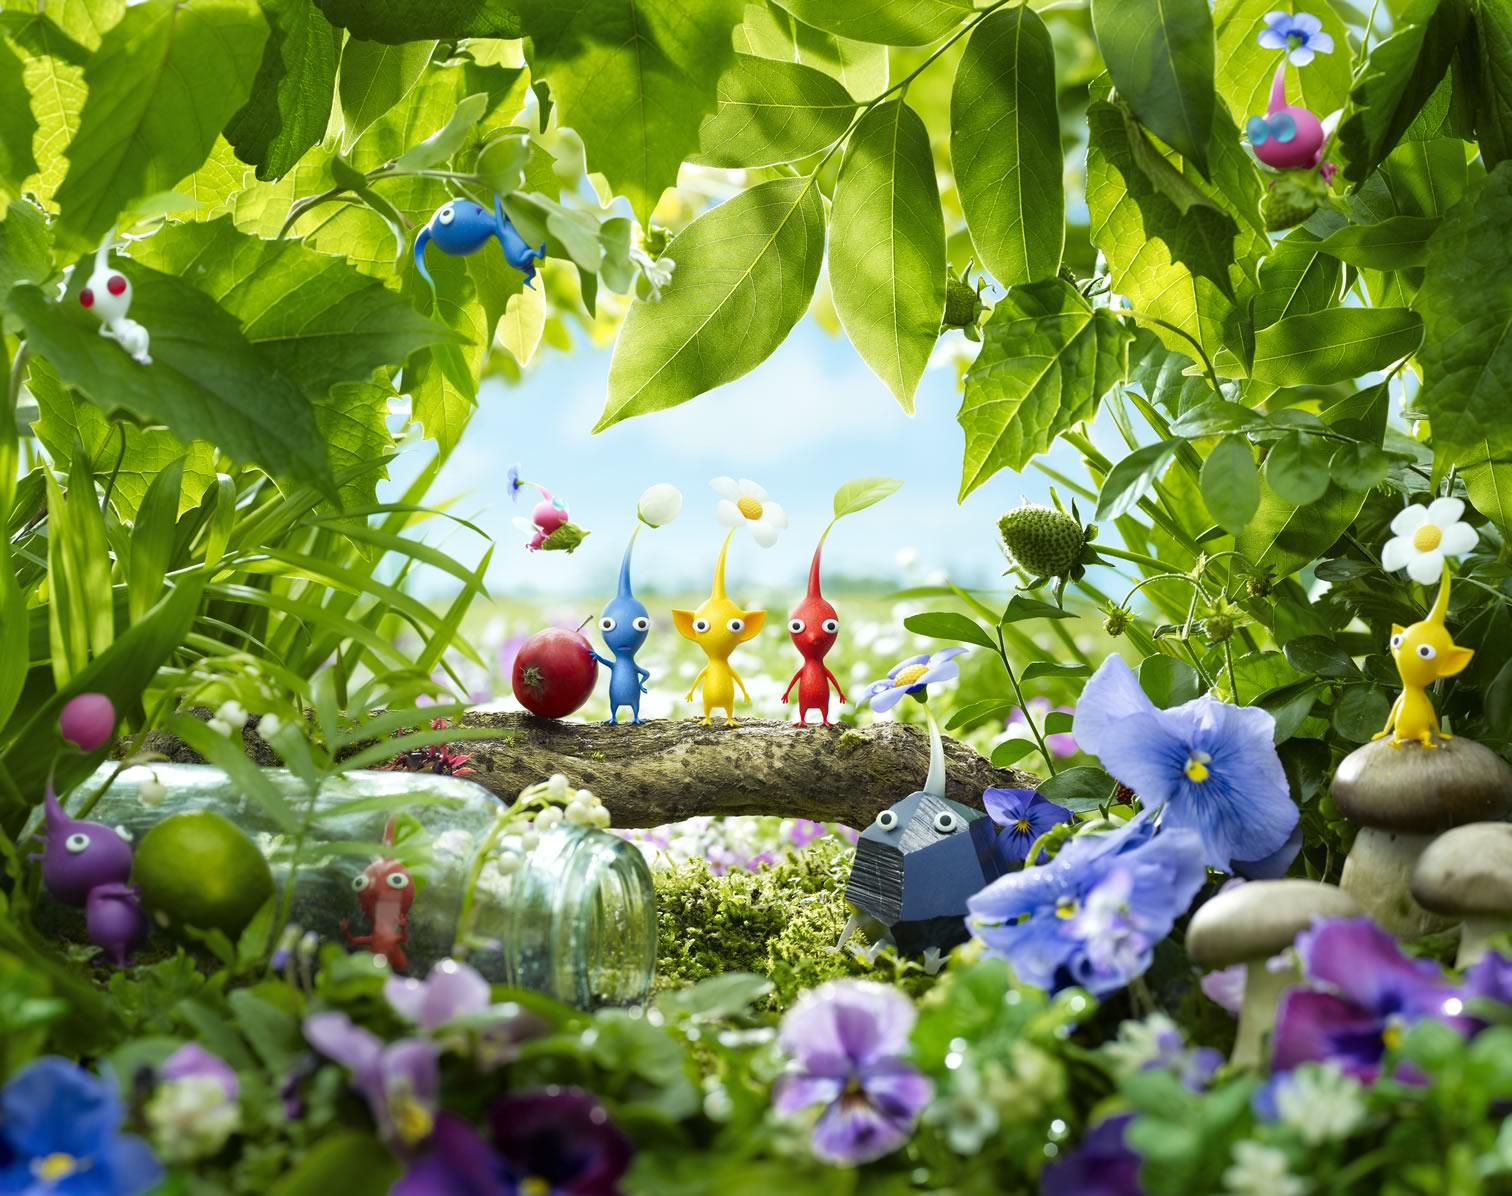 Nintendo Pr Battle Hordes Of Enemies In New Action Packed Dlc For Pikmin 3 Pure Nintendo